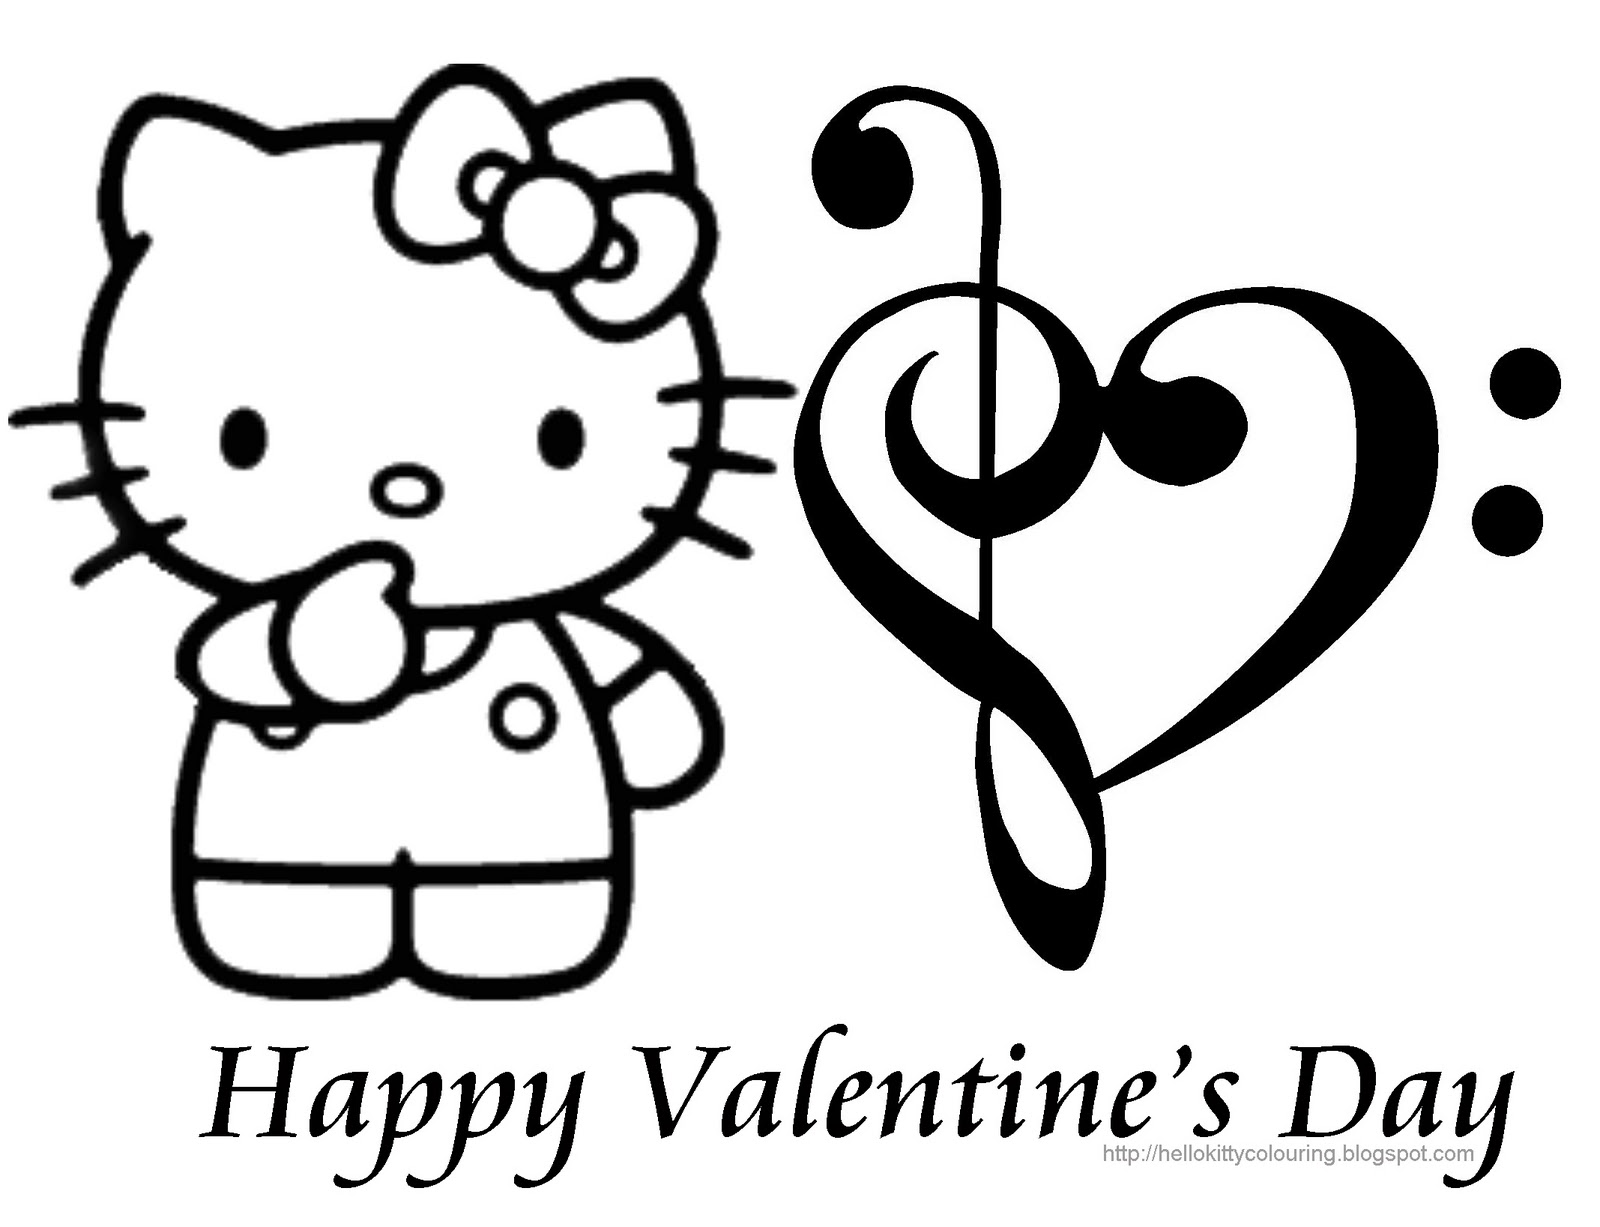 Coloring Pages For Valentines Day Hello Kitty : Hello kitty coloring pages